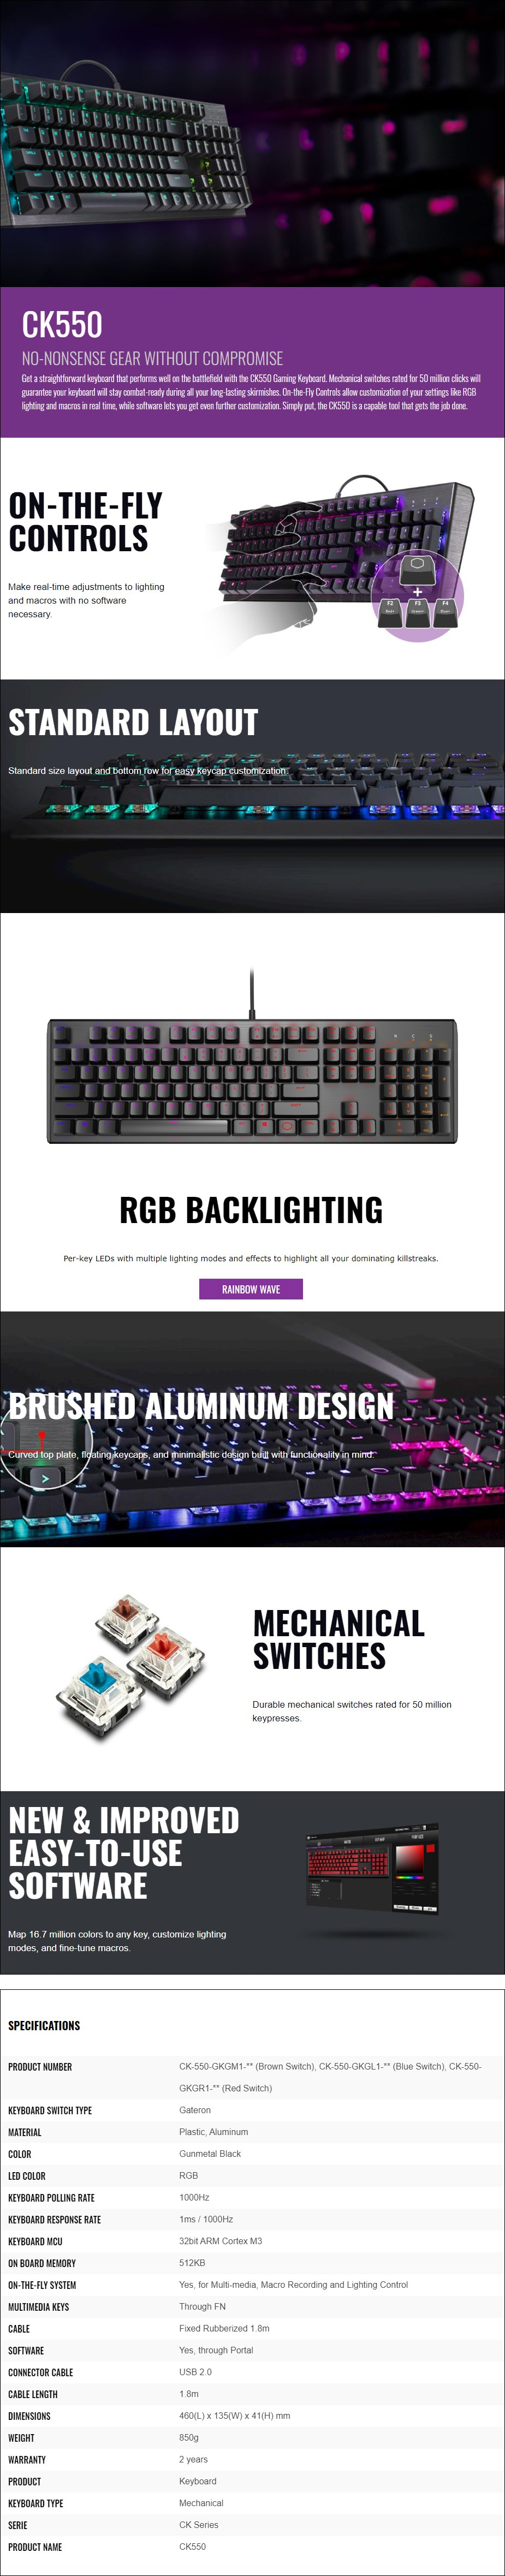 Cooler Master CK550 RGB Mechanical Gaming Keyboard - Gateron Blue - Overview 1